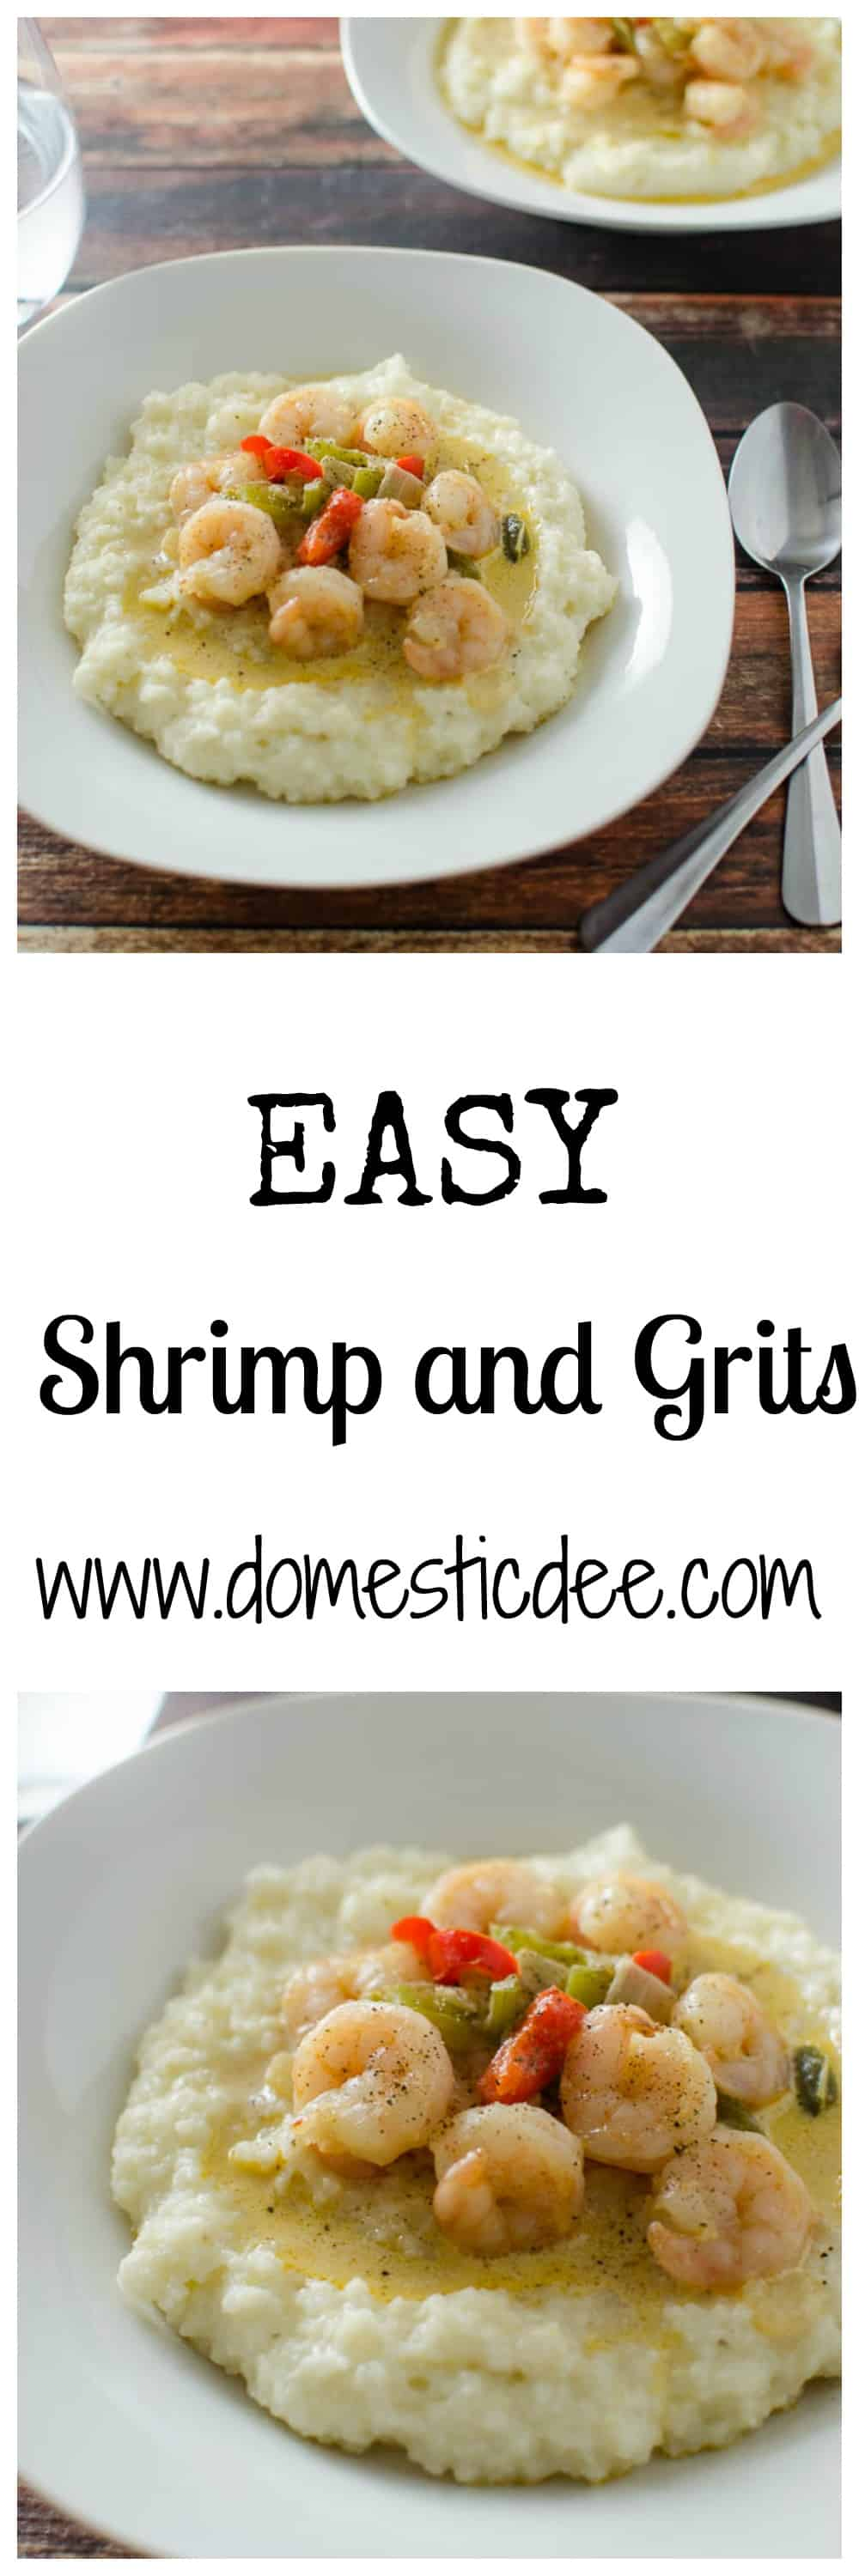 Easy shrimp and Grits- Spice up your weeknight menu with this quick and easy shrimp and grits recipe. I www.domesticdee.com